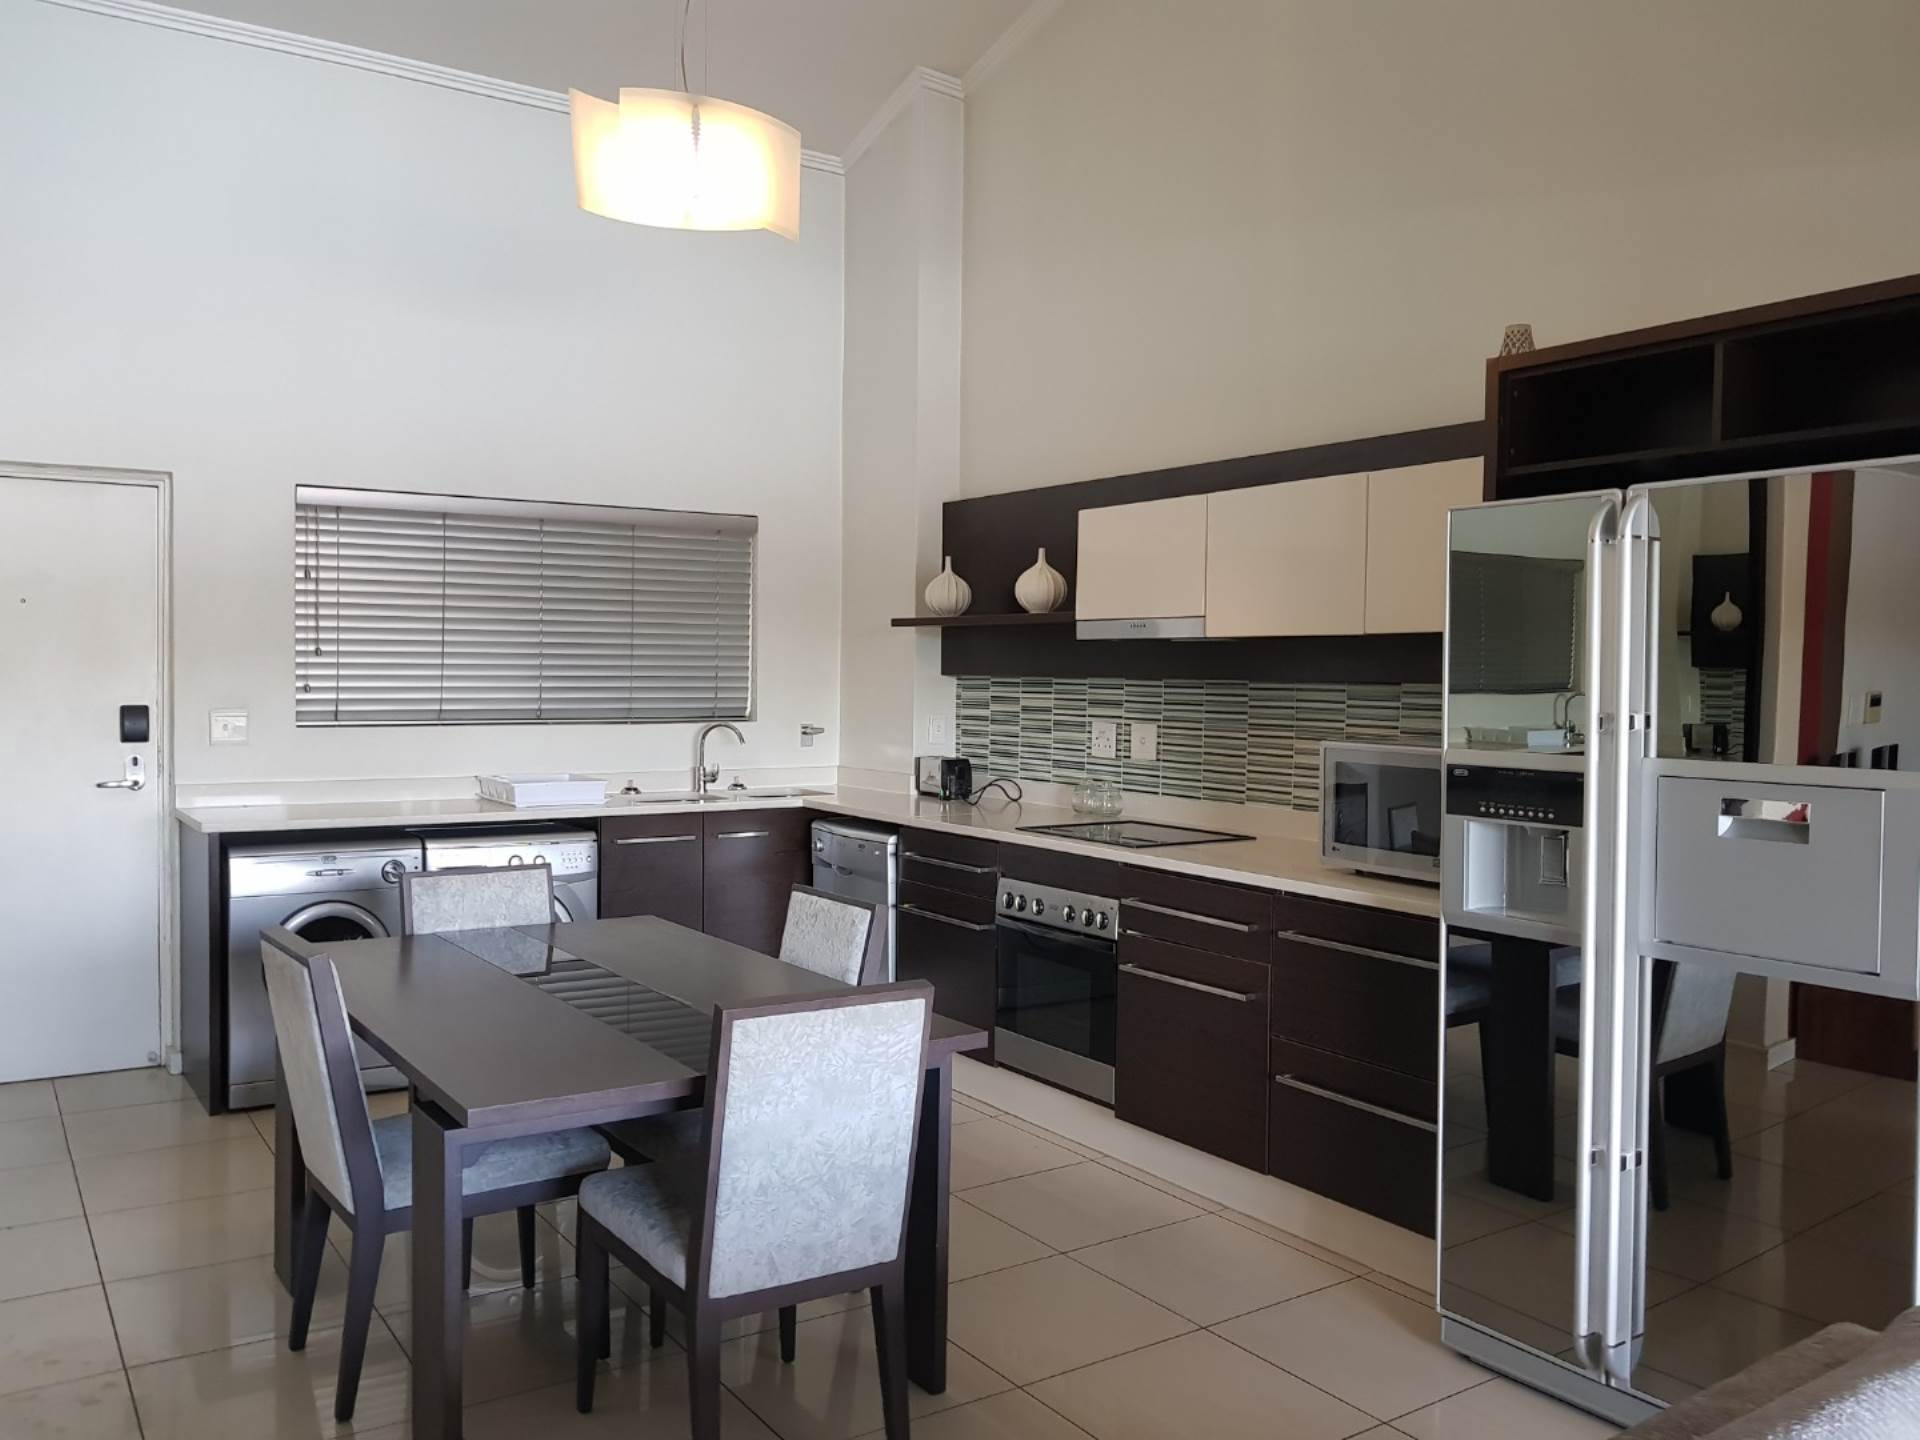 3 BedroomPenthouse To Rent In Bedfordview